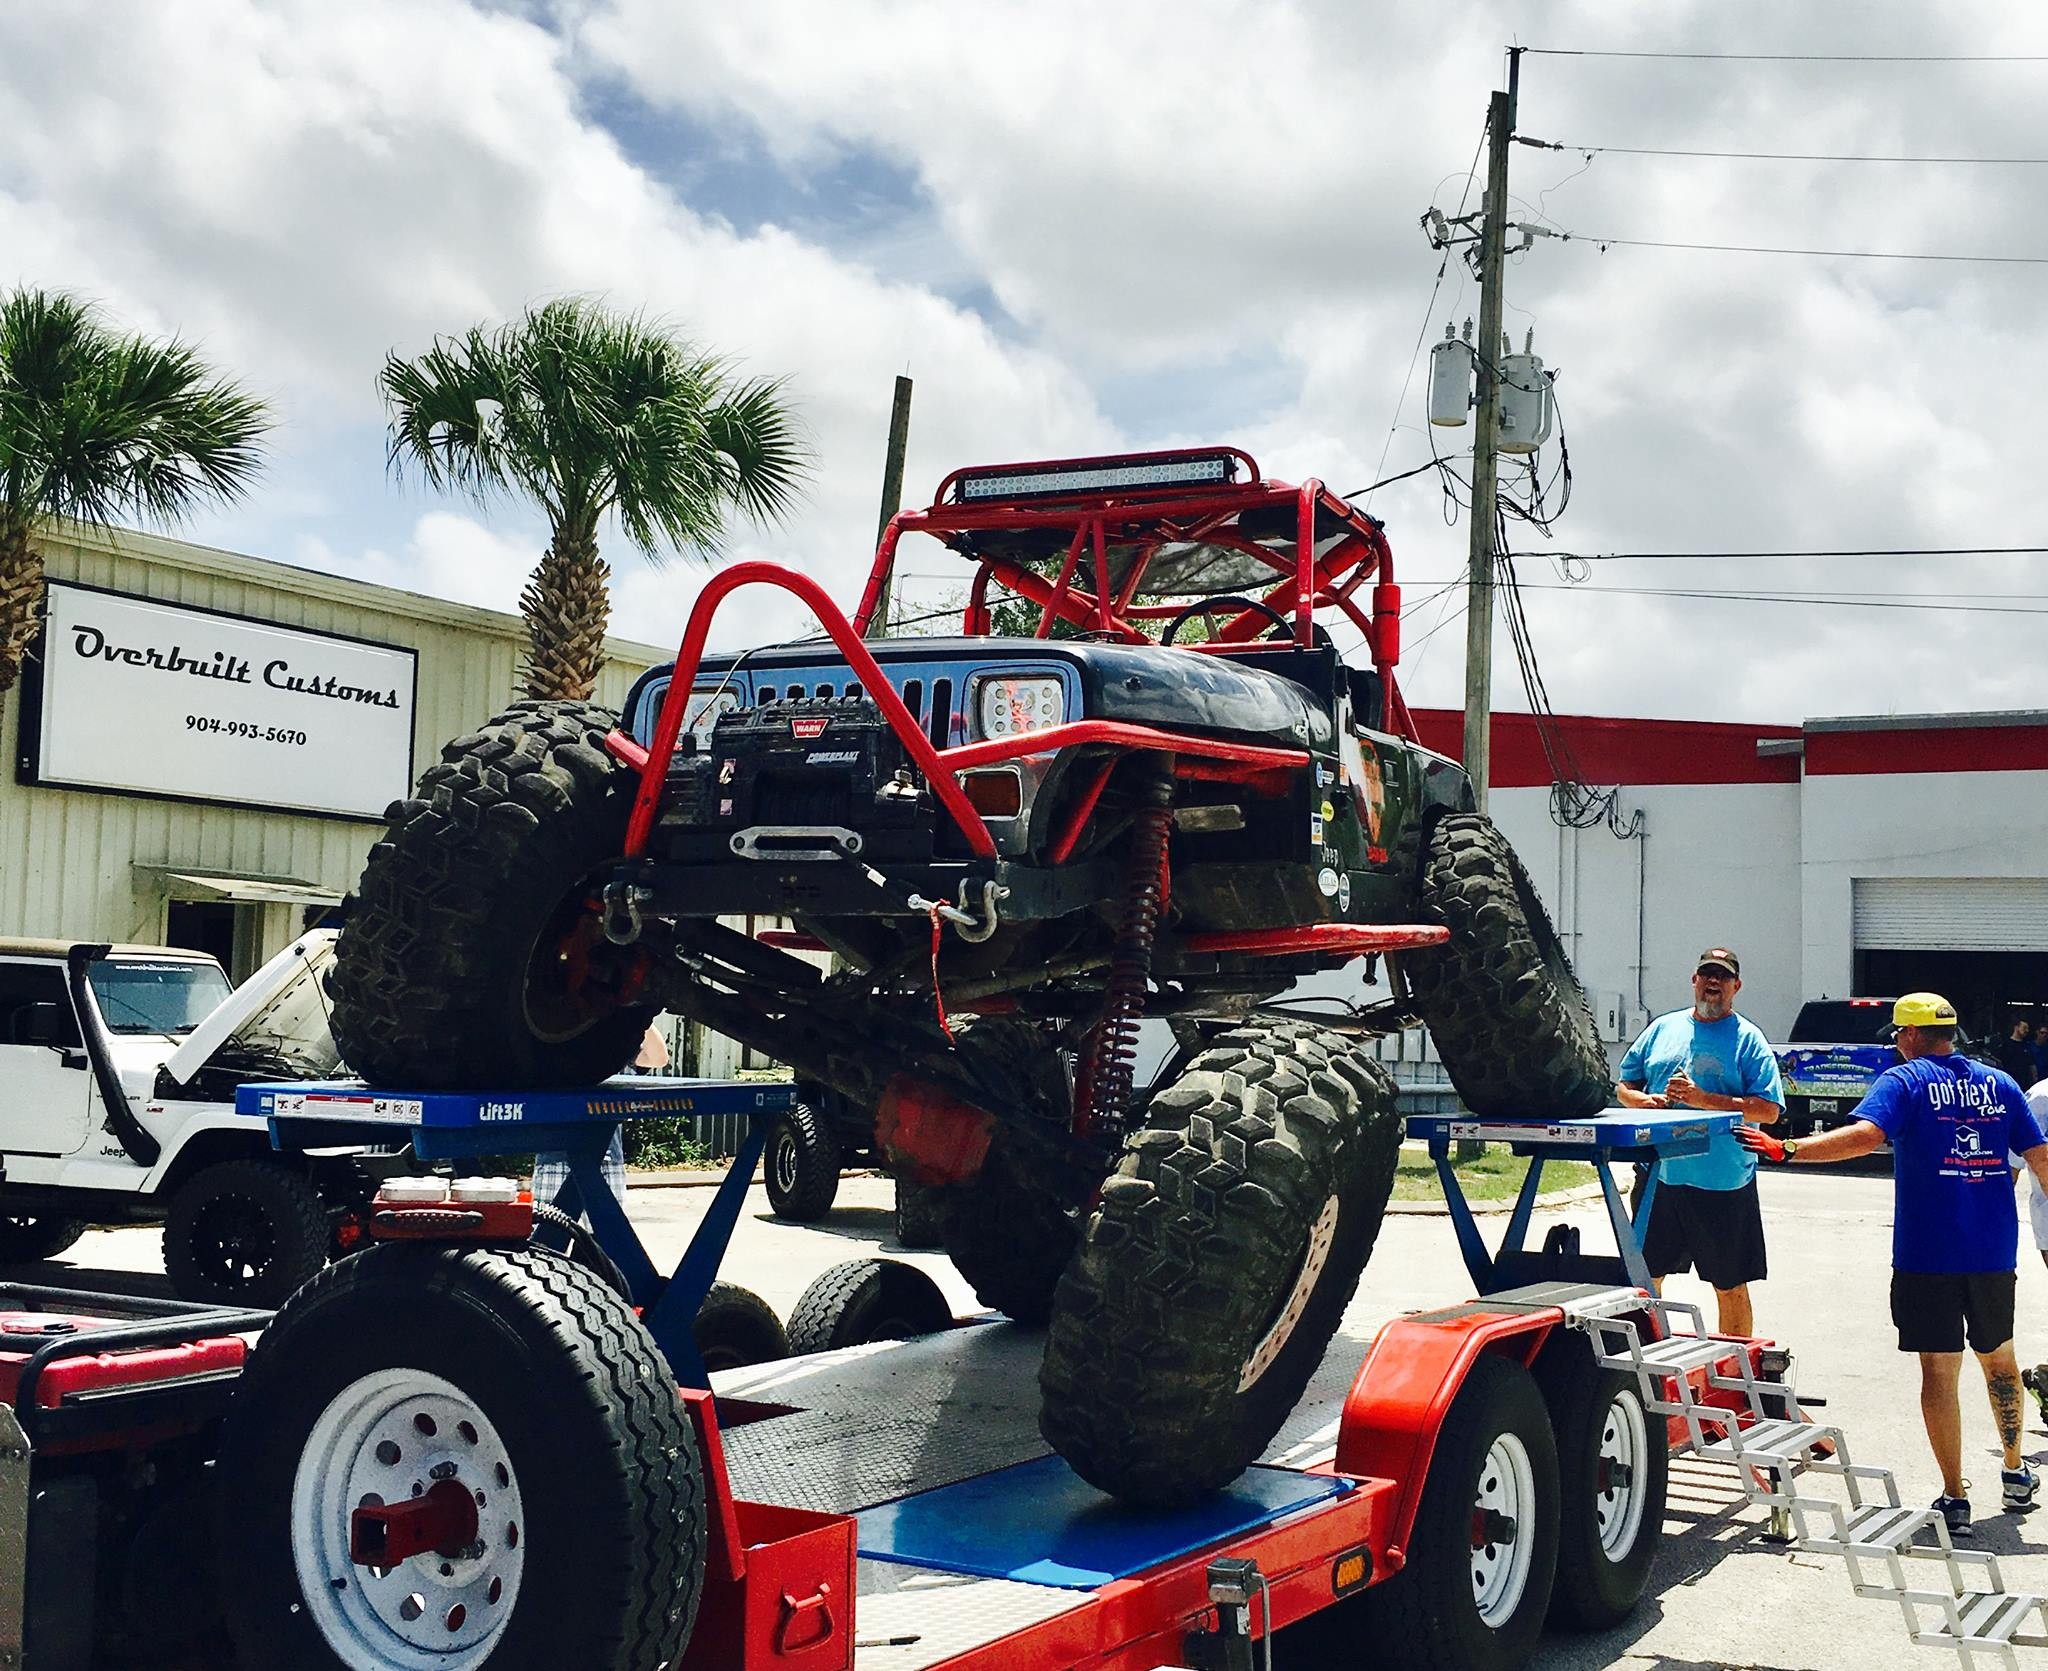 Overbuilt Customs is now an authorized dealer for ARB products